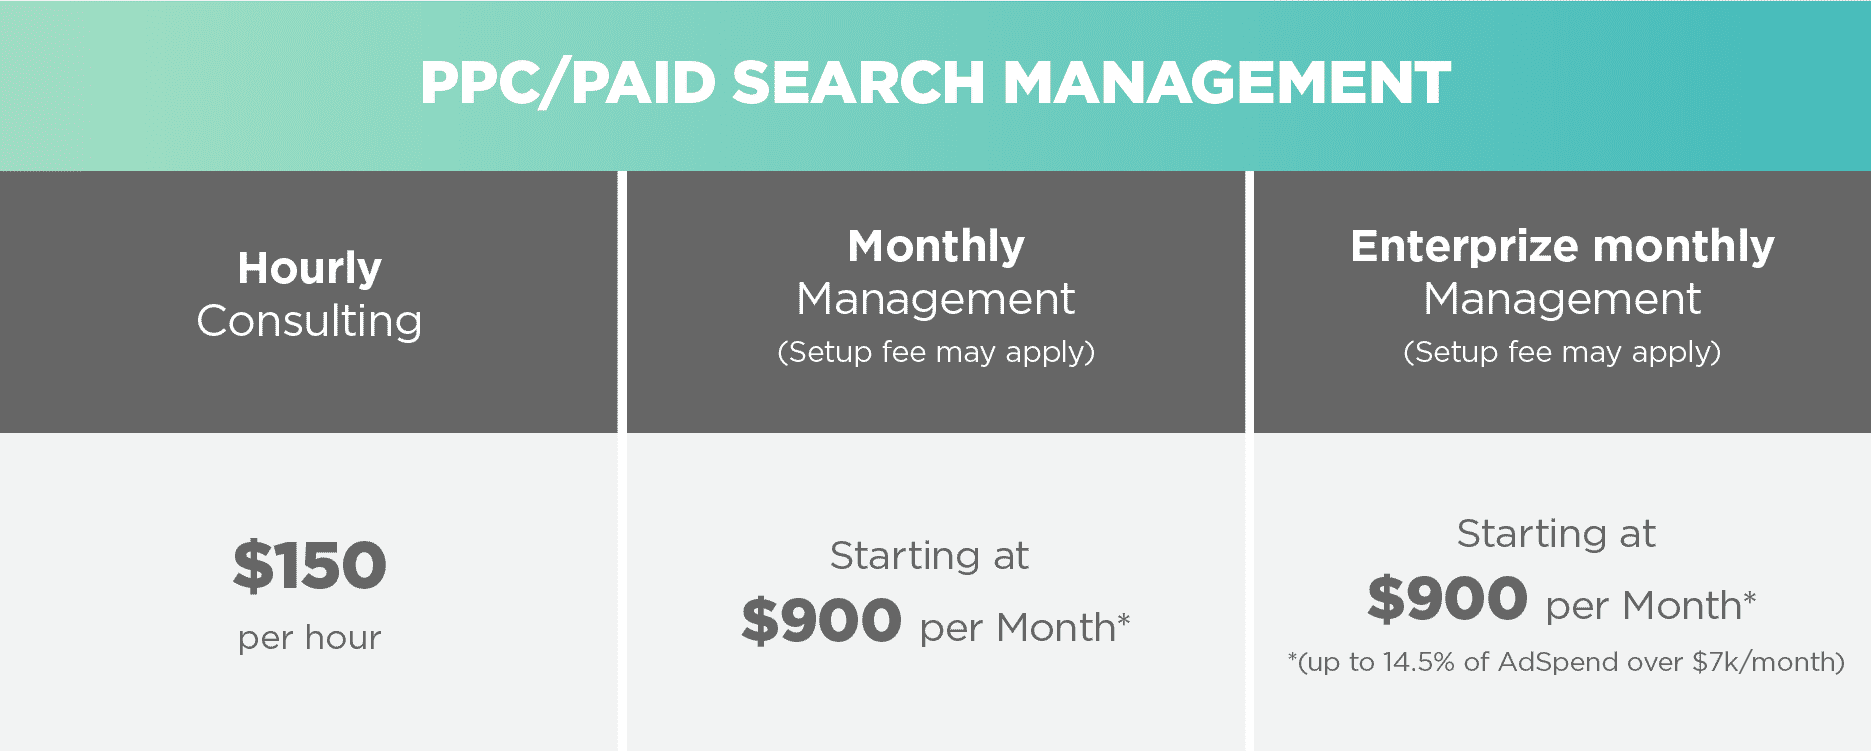 LTTR PPC Paid Search Pricing Table